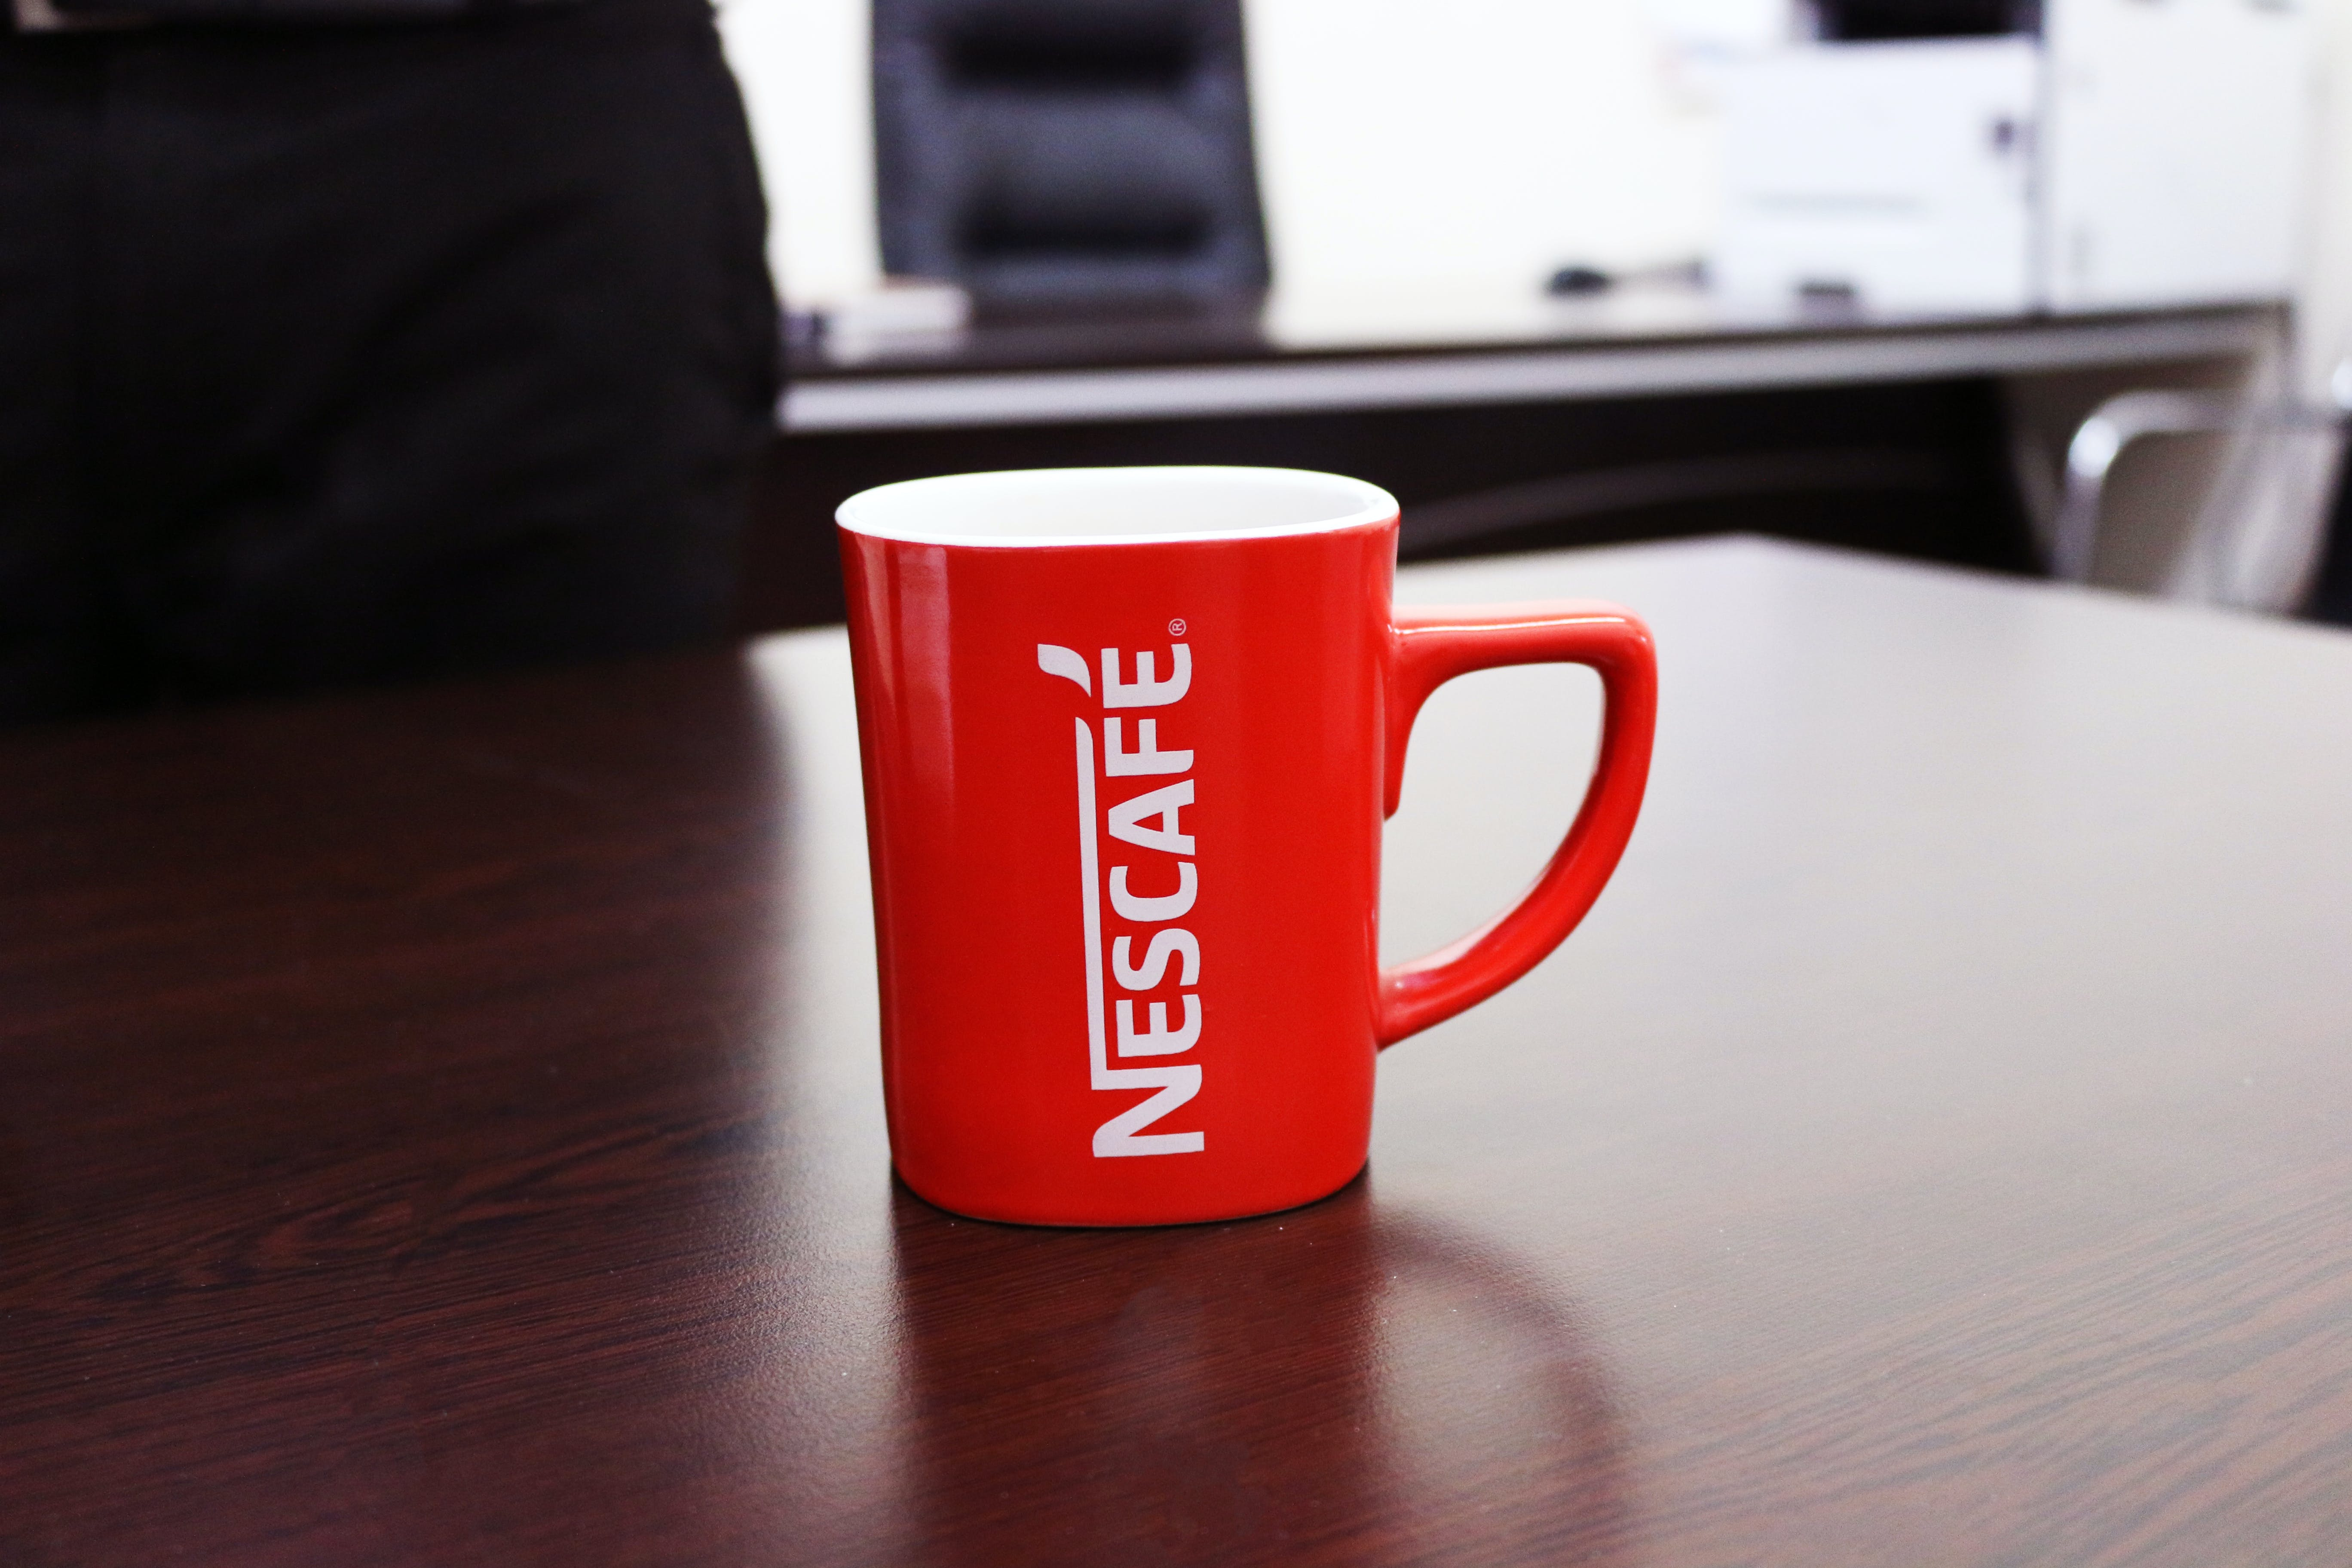 Red and White Nescafe-printed Mug on Brown Wooden Table